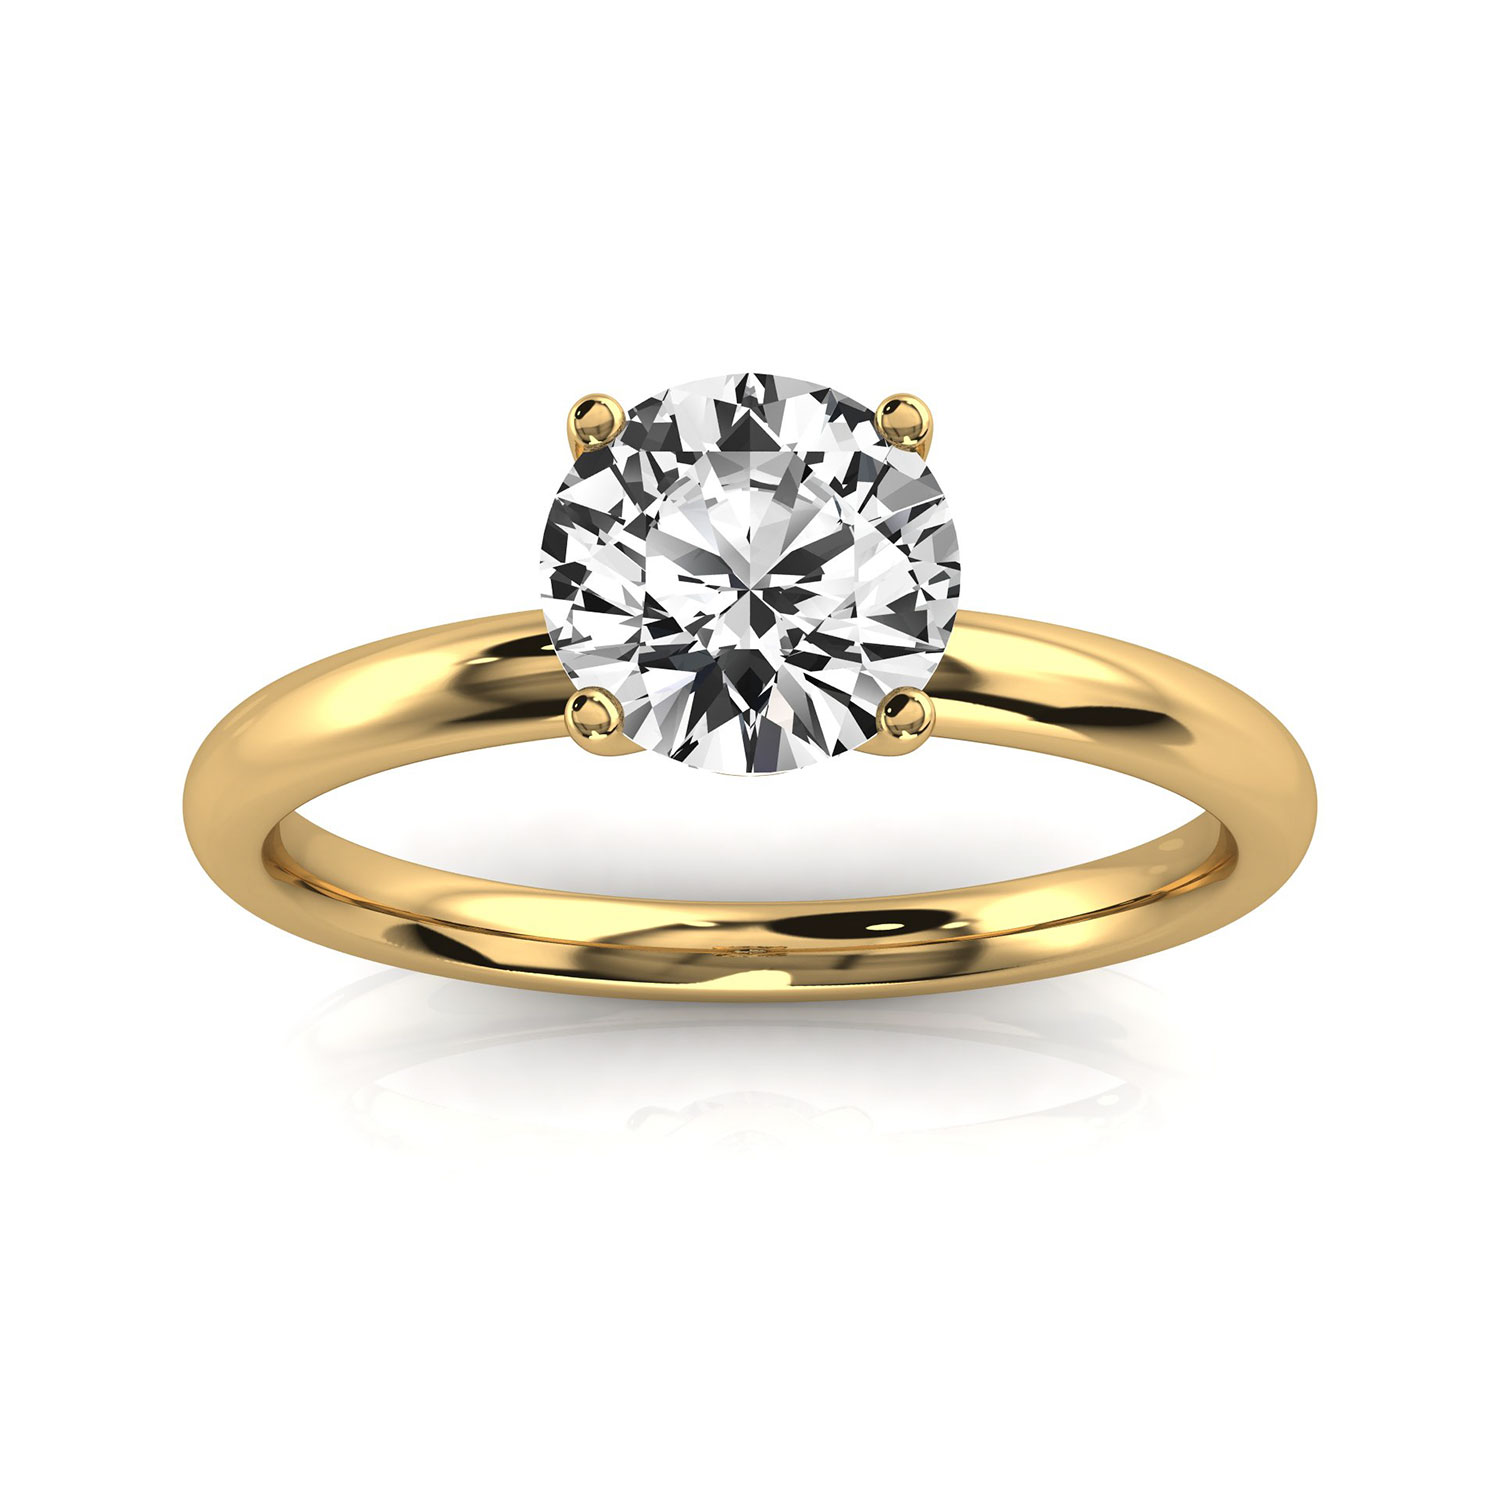 14K Yellow Gold  Ena Delicate 1.8 MM Solitaire Ring